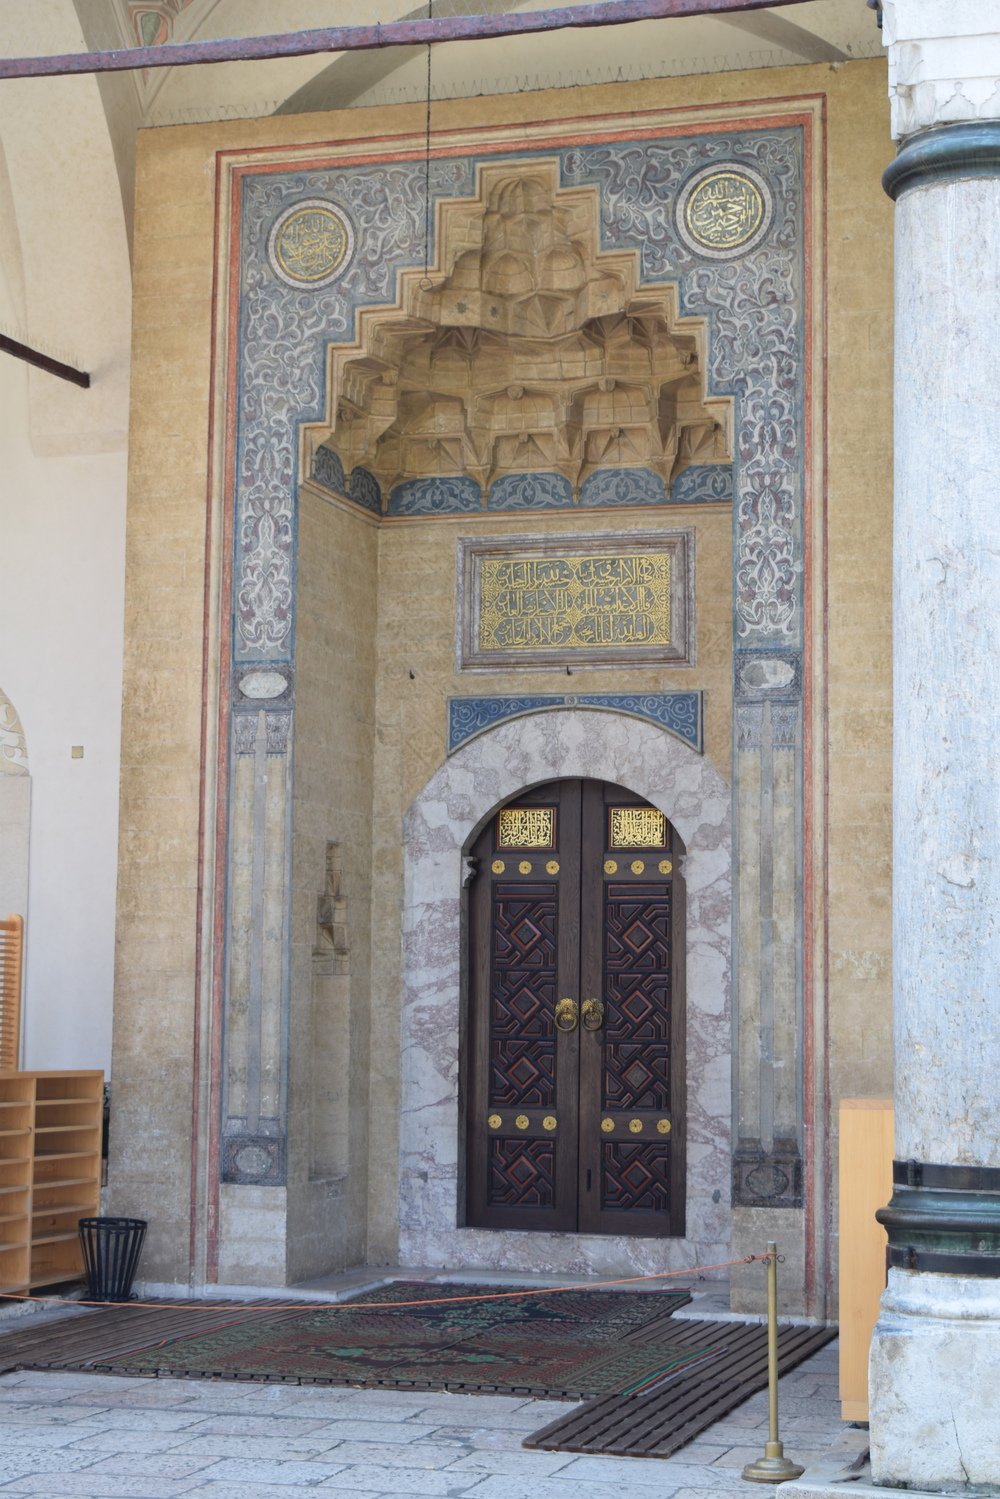 Entrance door to Gazi Huzrev-beg Mosque